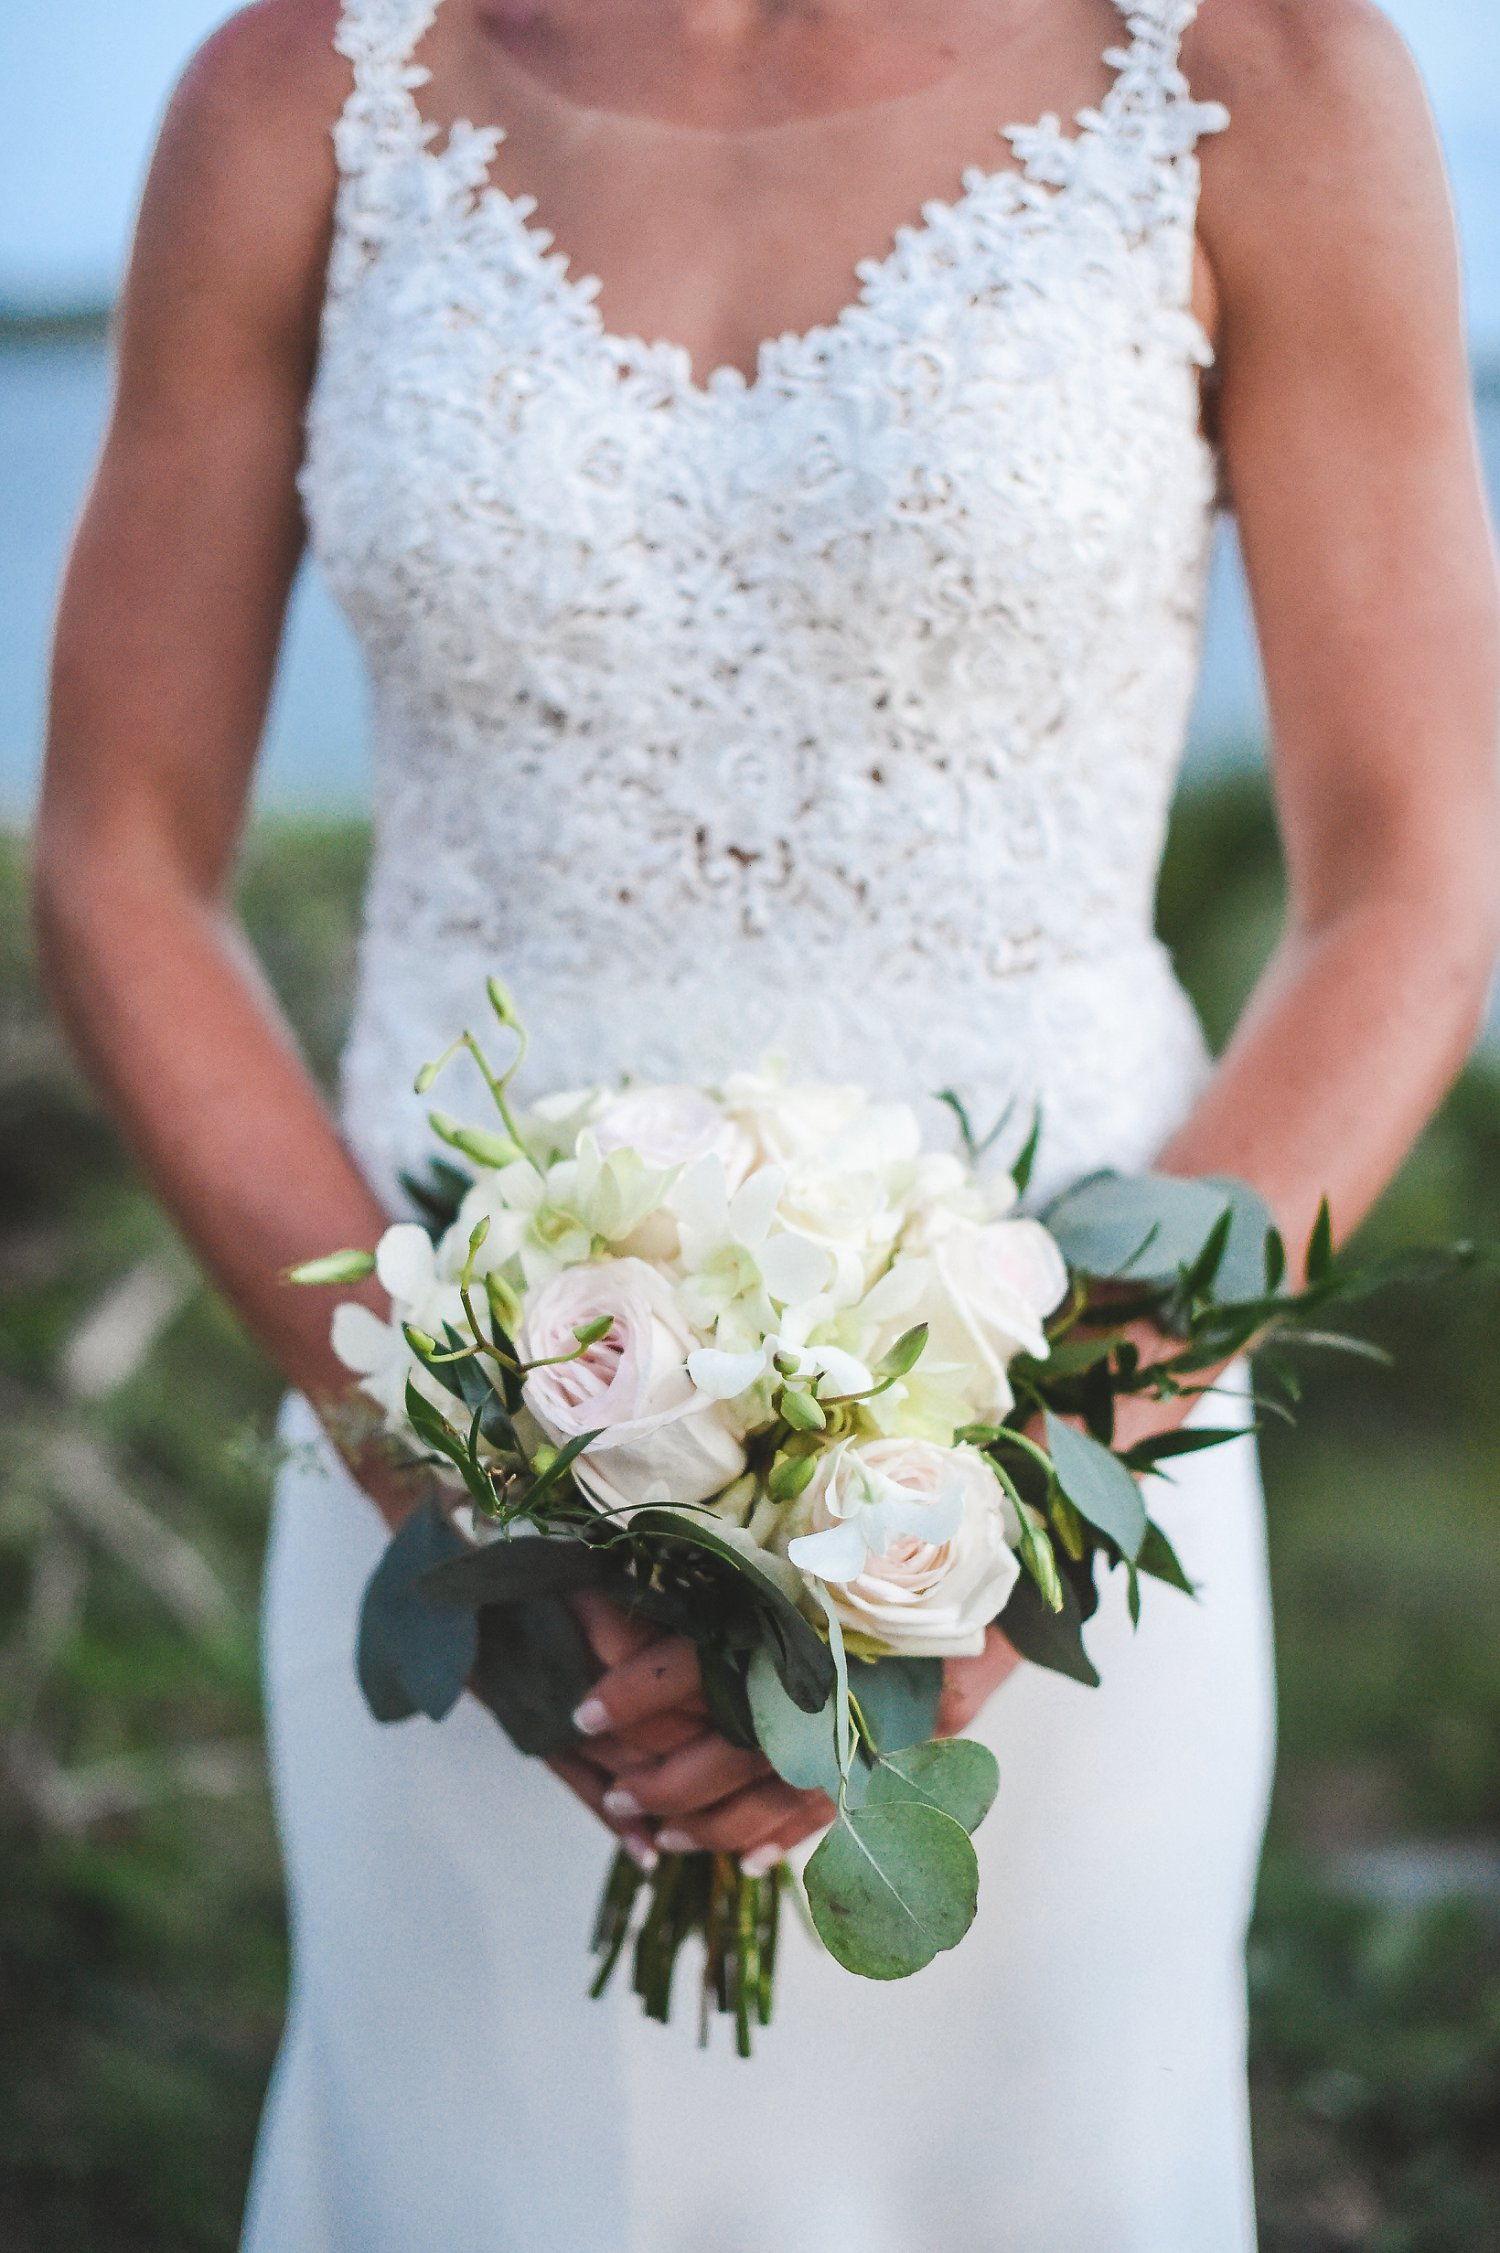 Blush roses and white/ivory dendrobium orchids bridal bouquet.